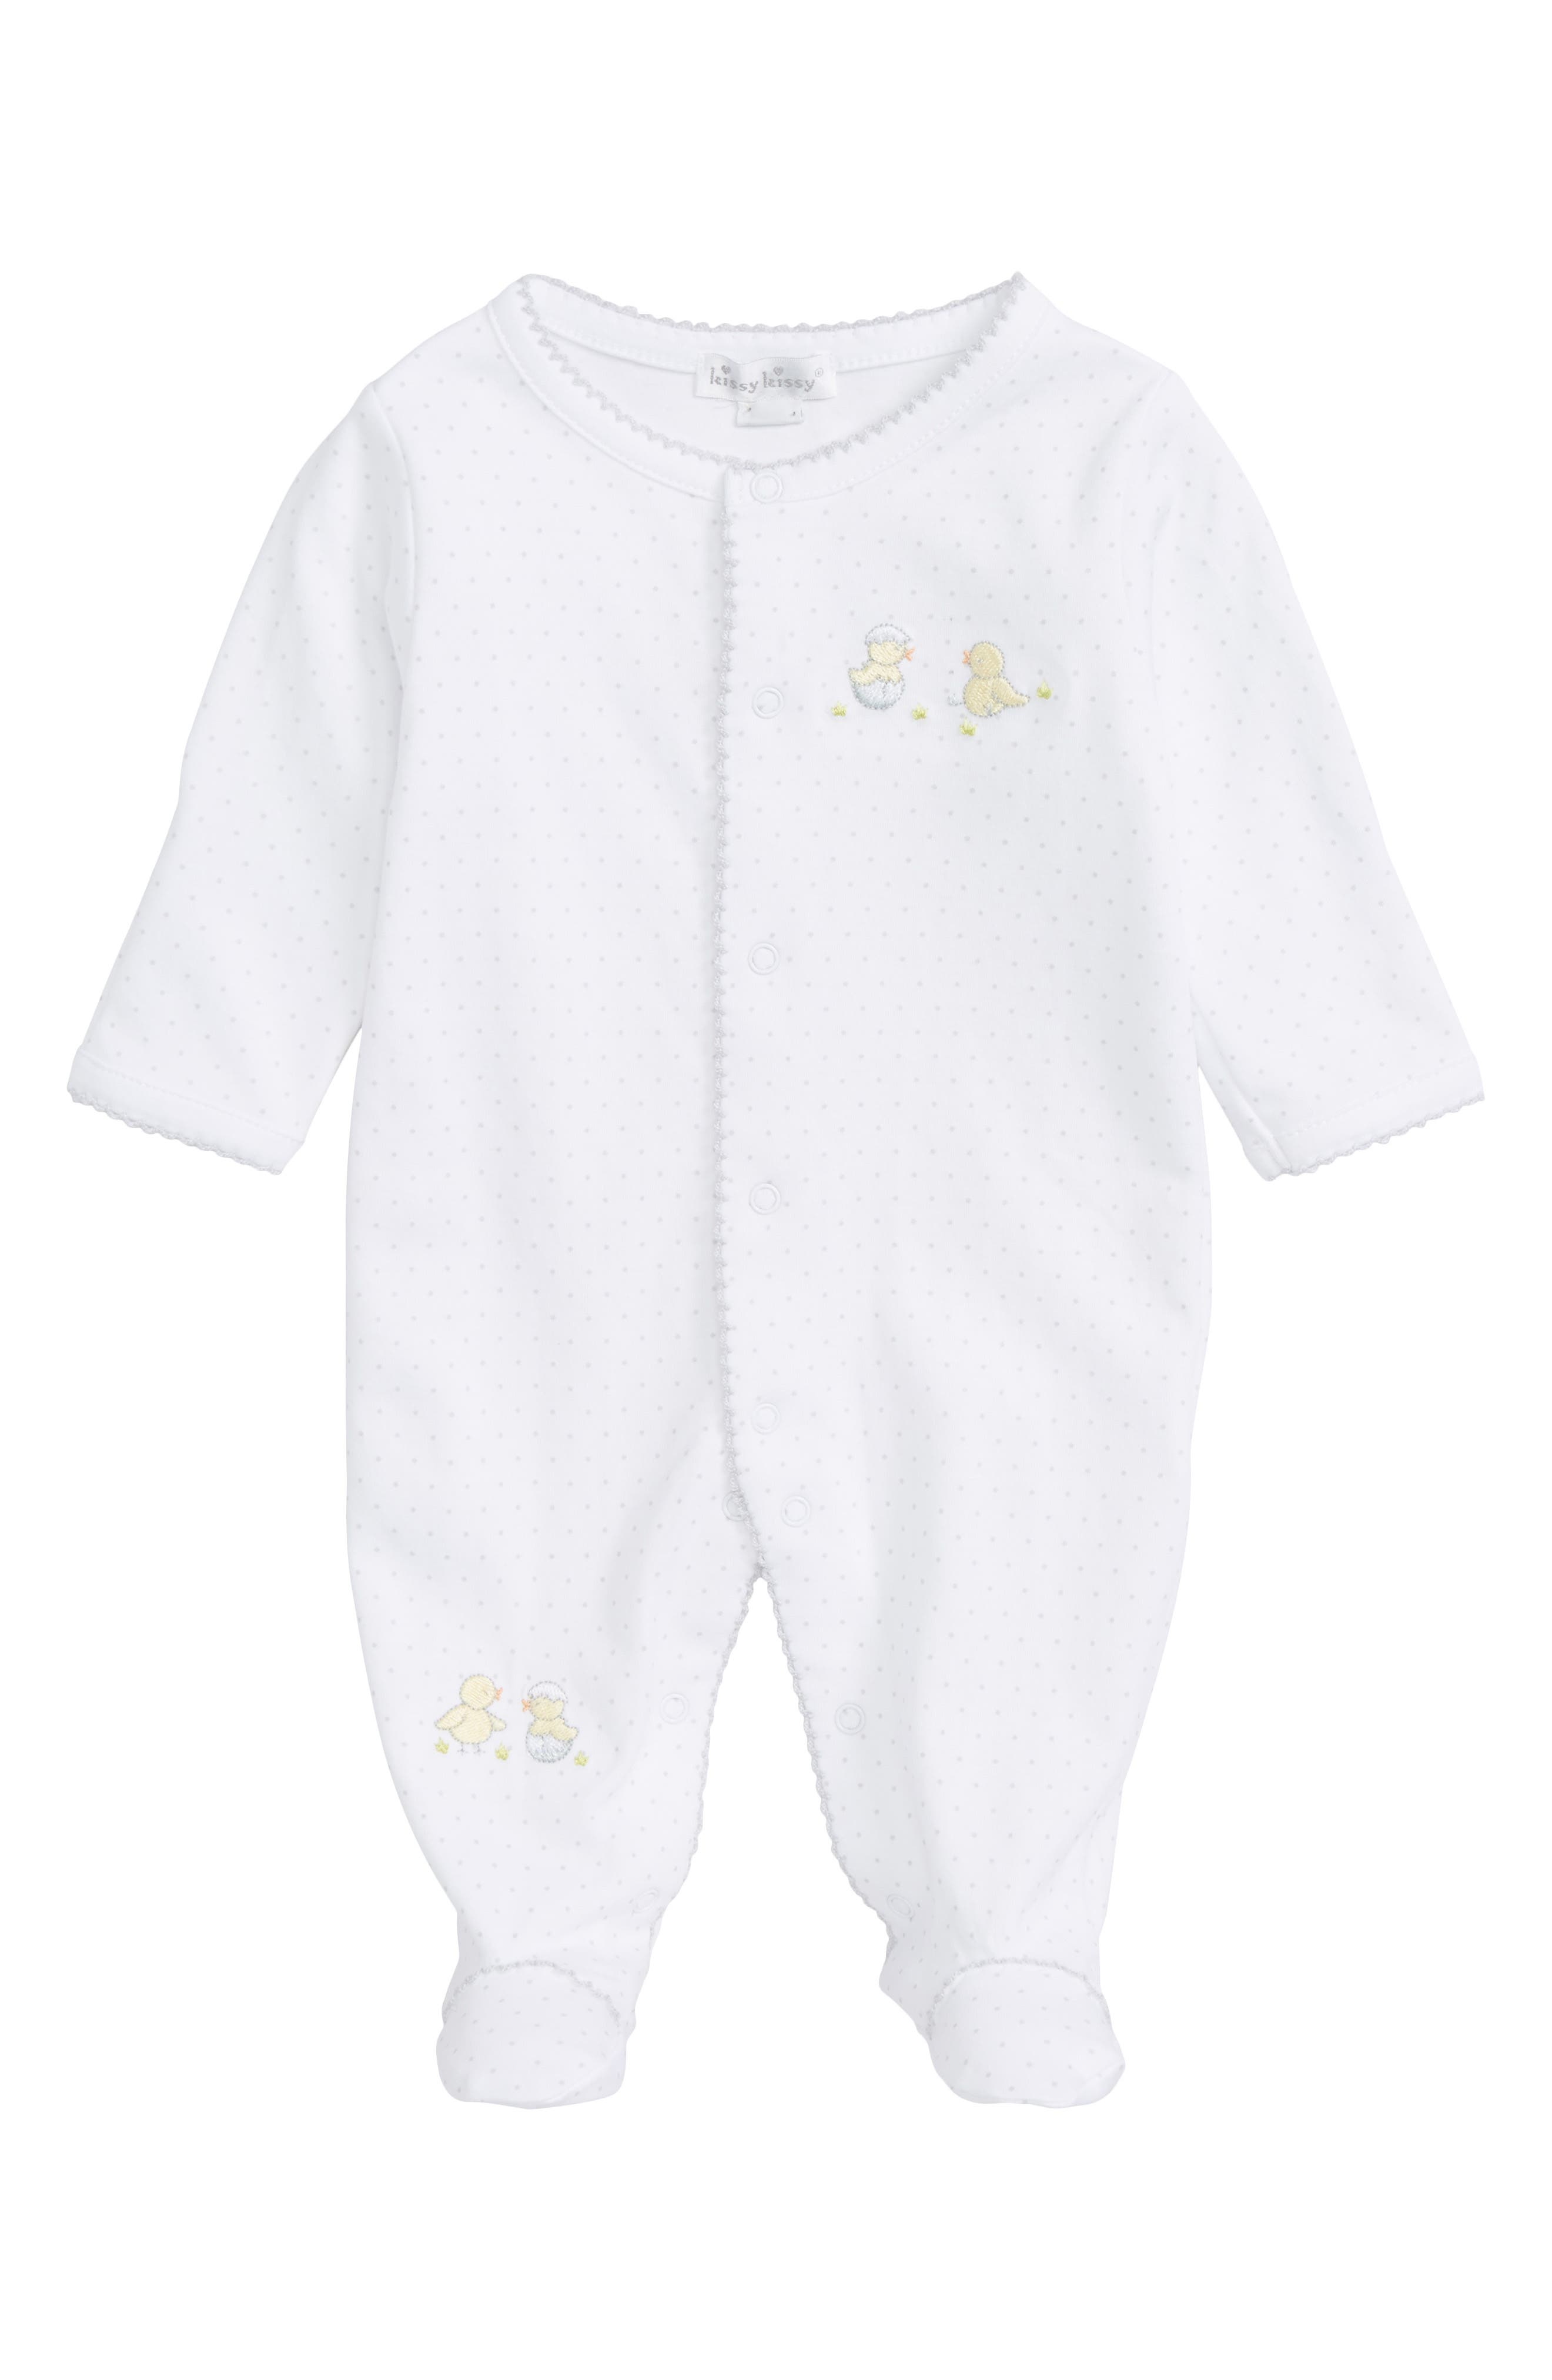 Main Image - Kissy Kissy Hatchlings Pima Cotton Footie (Baby)